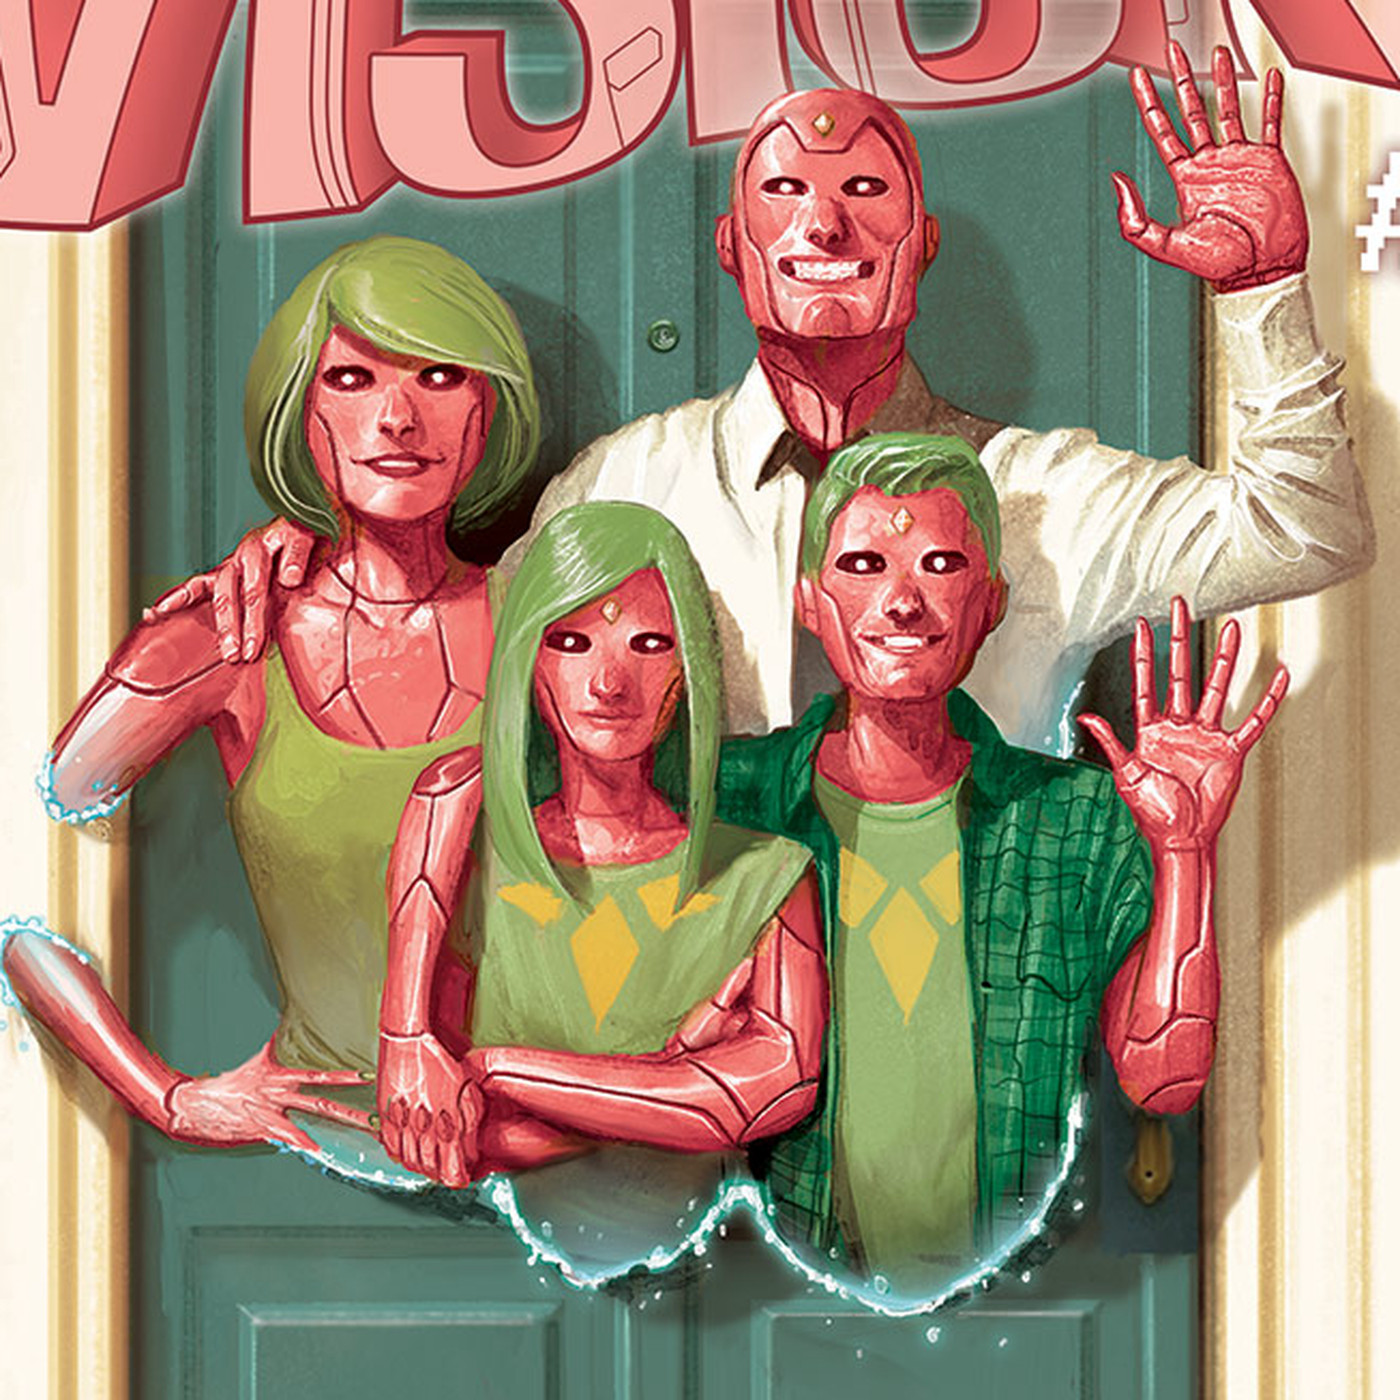 Tom King's Vision comics are the perfect follow-up to WandaVision - The Verge